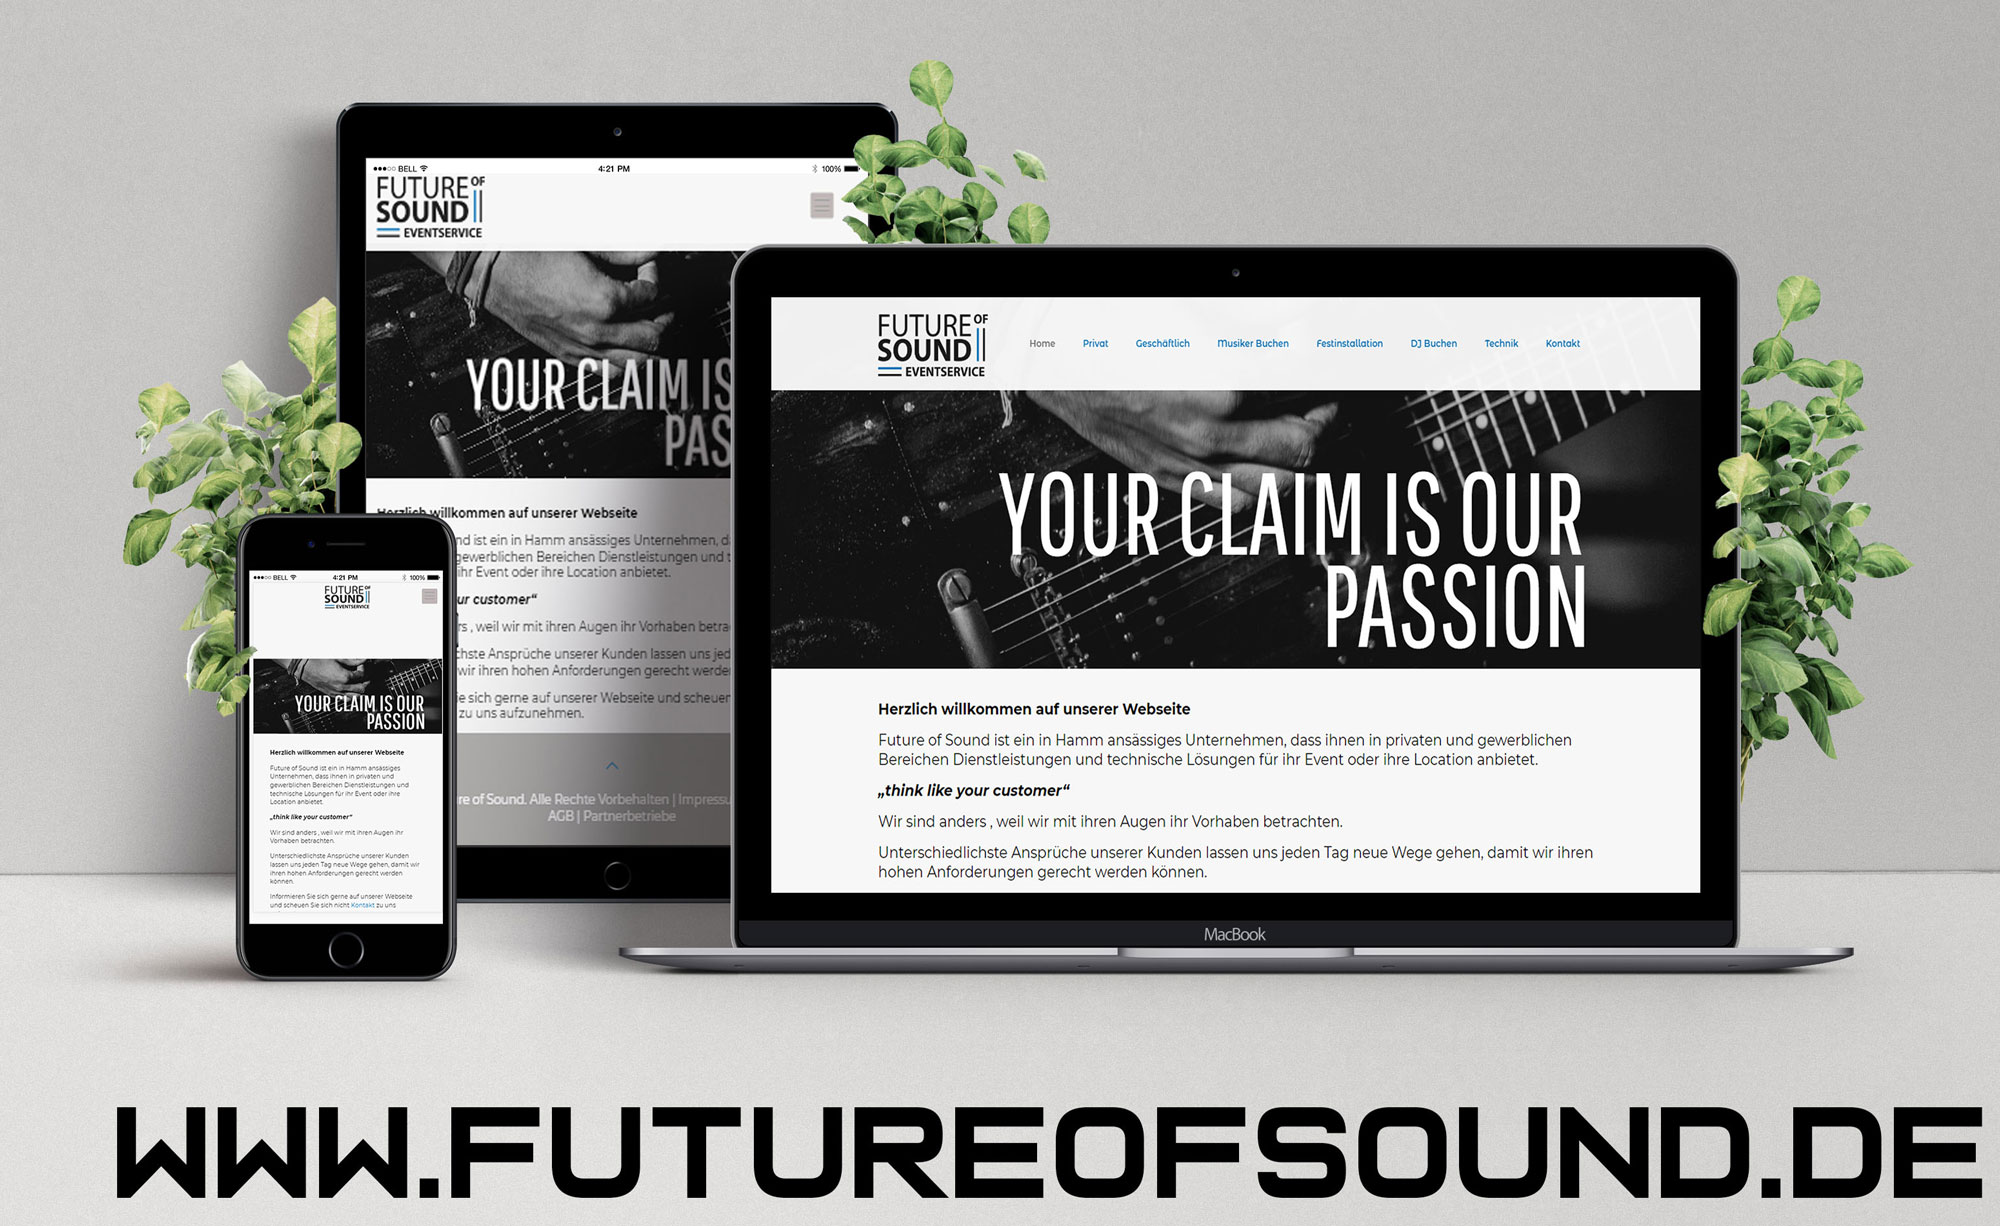 Futureofsound Webseite